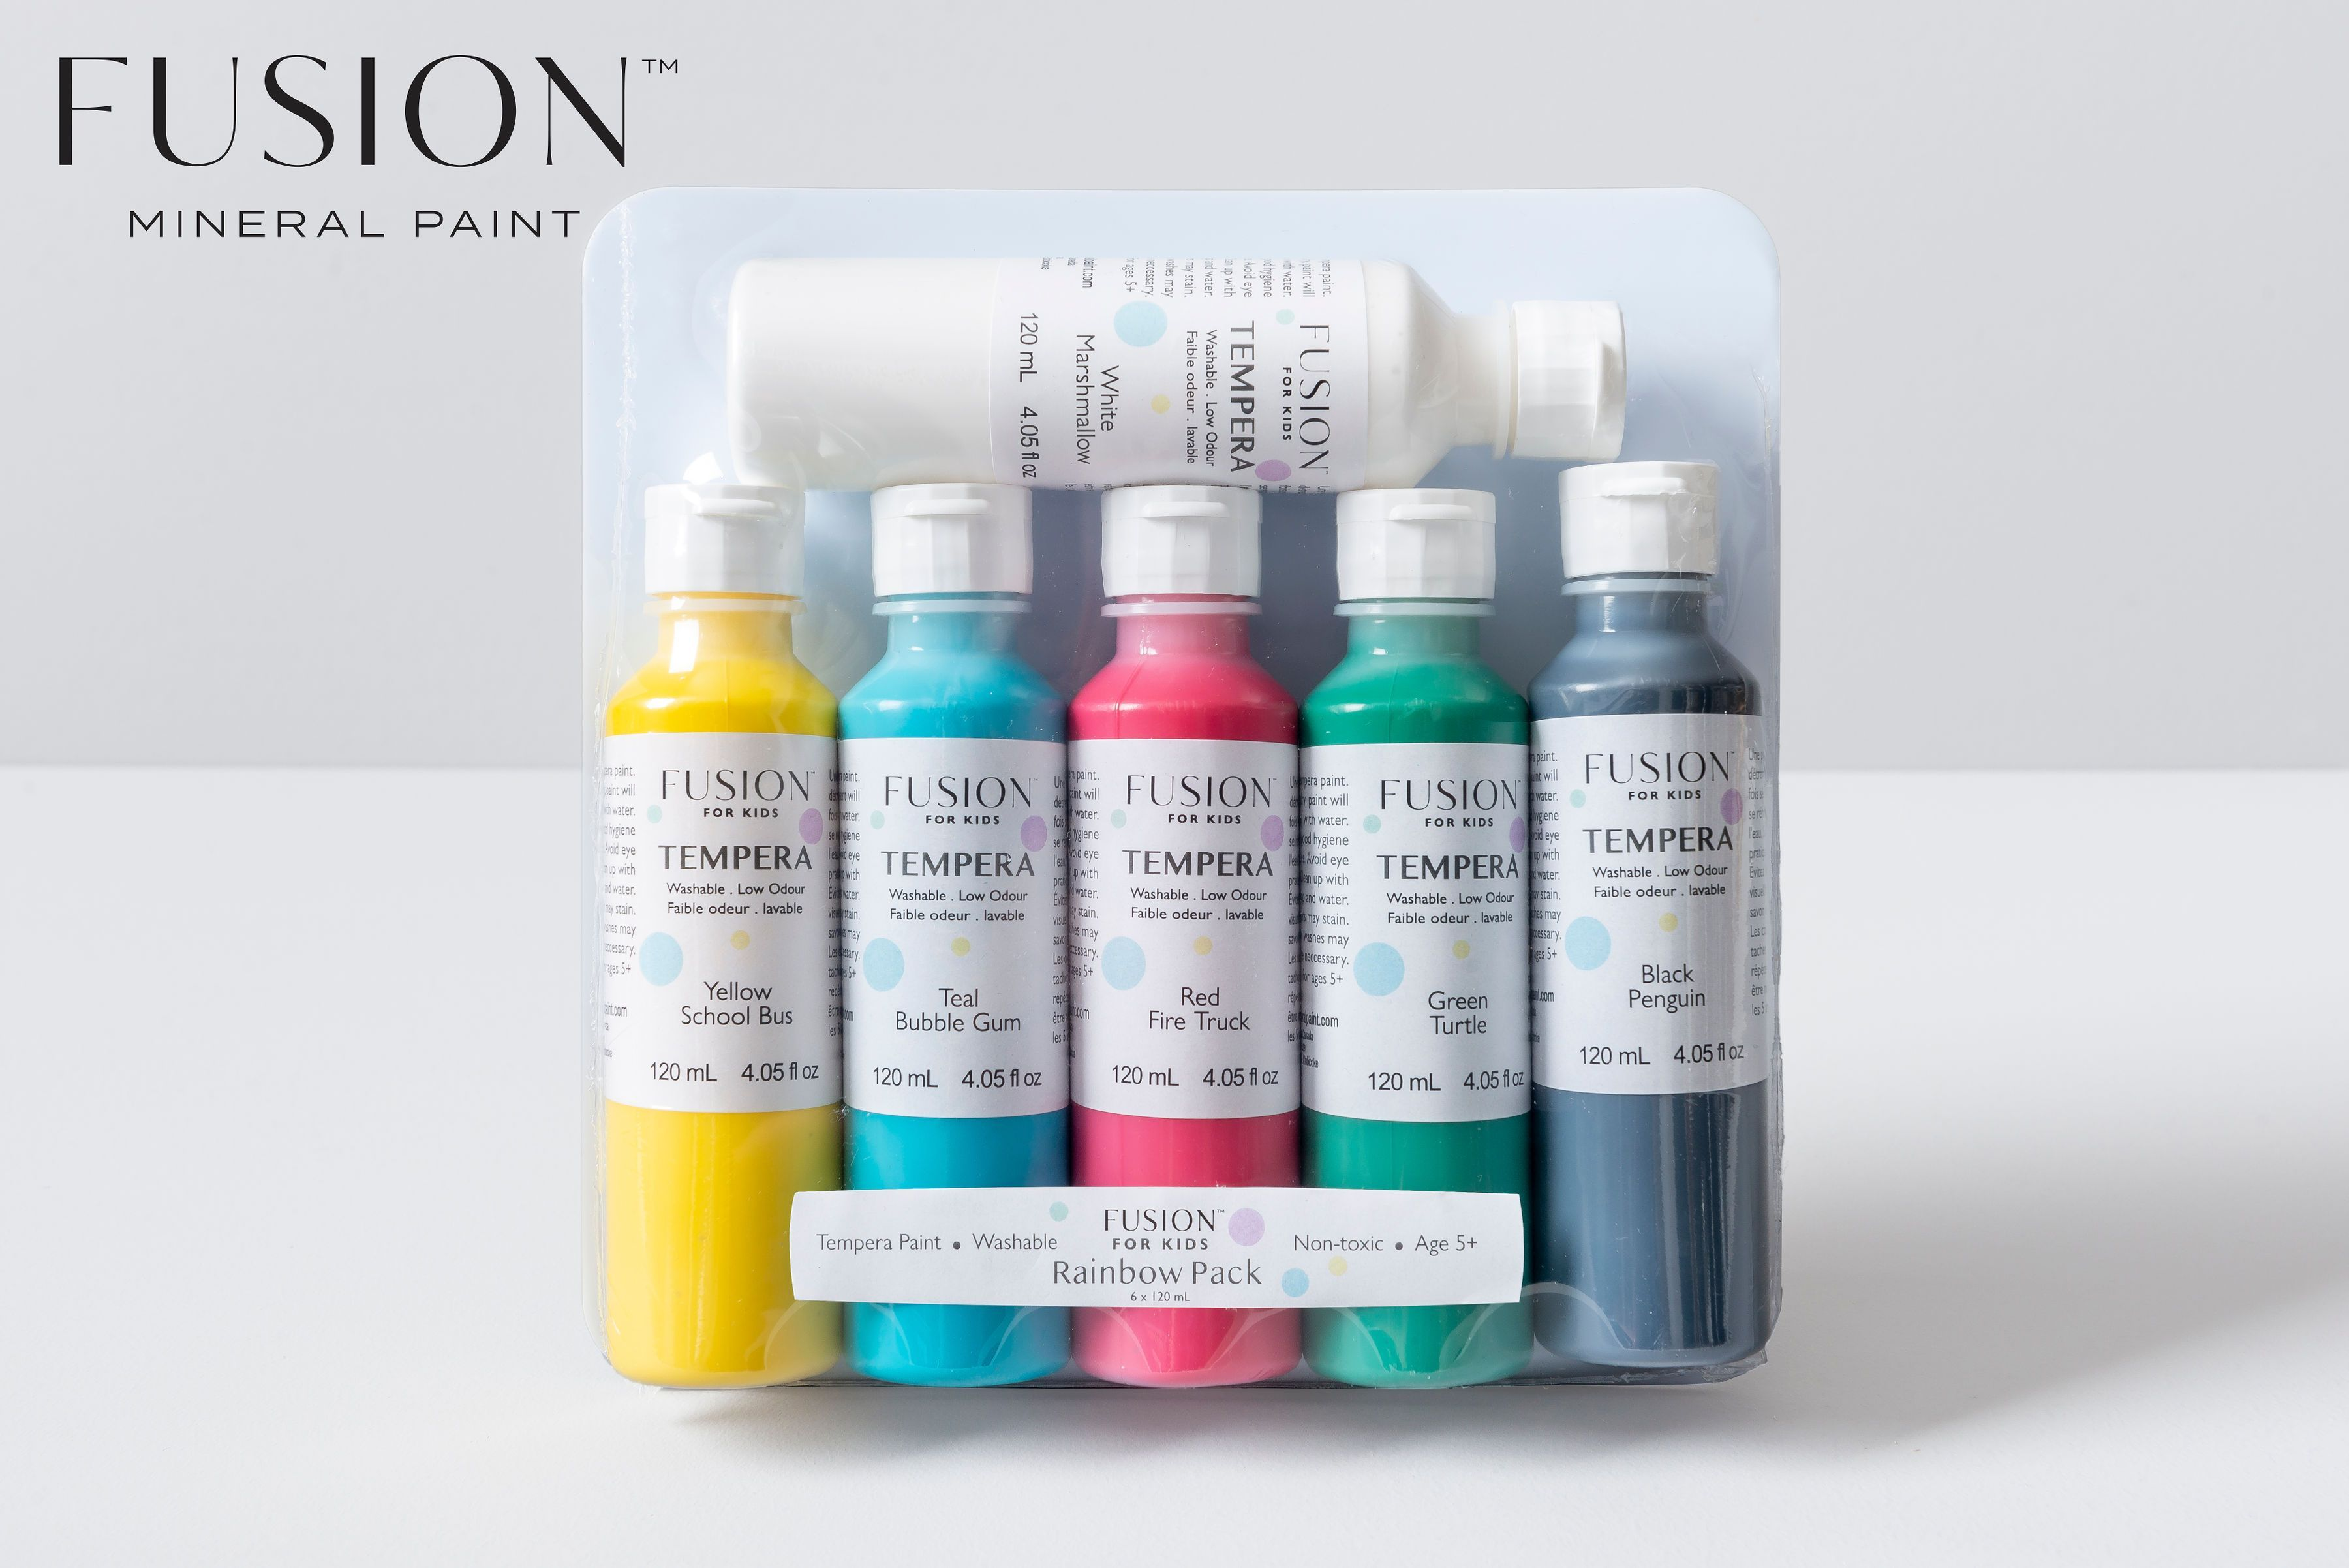 Fusion Tempera Paint For Kids – Rainbow Pack